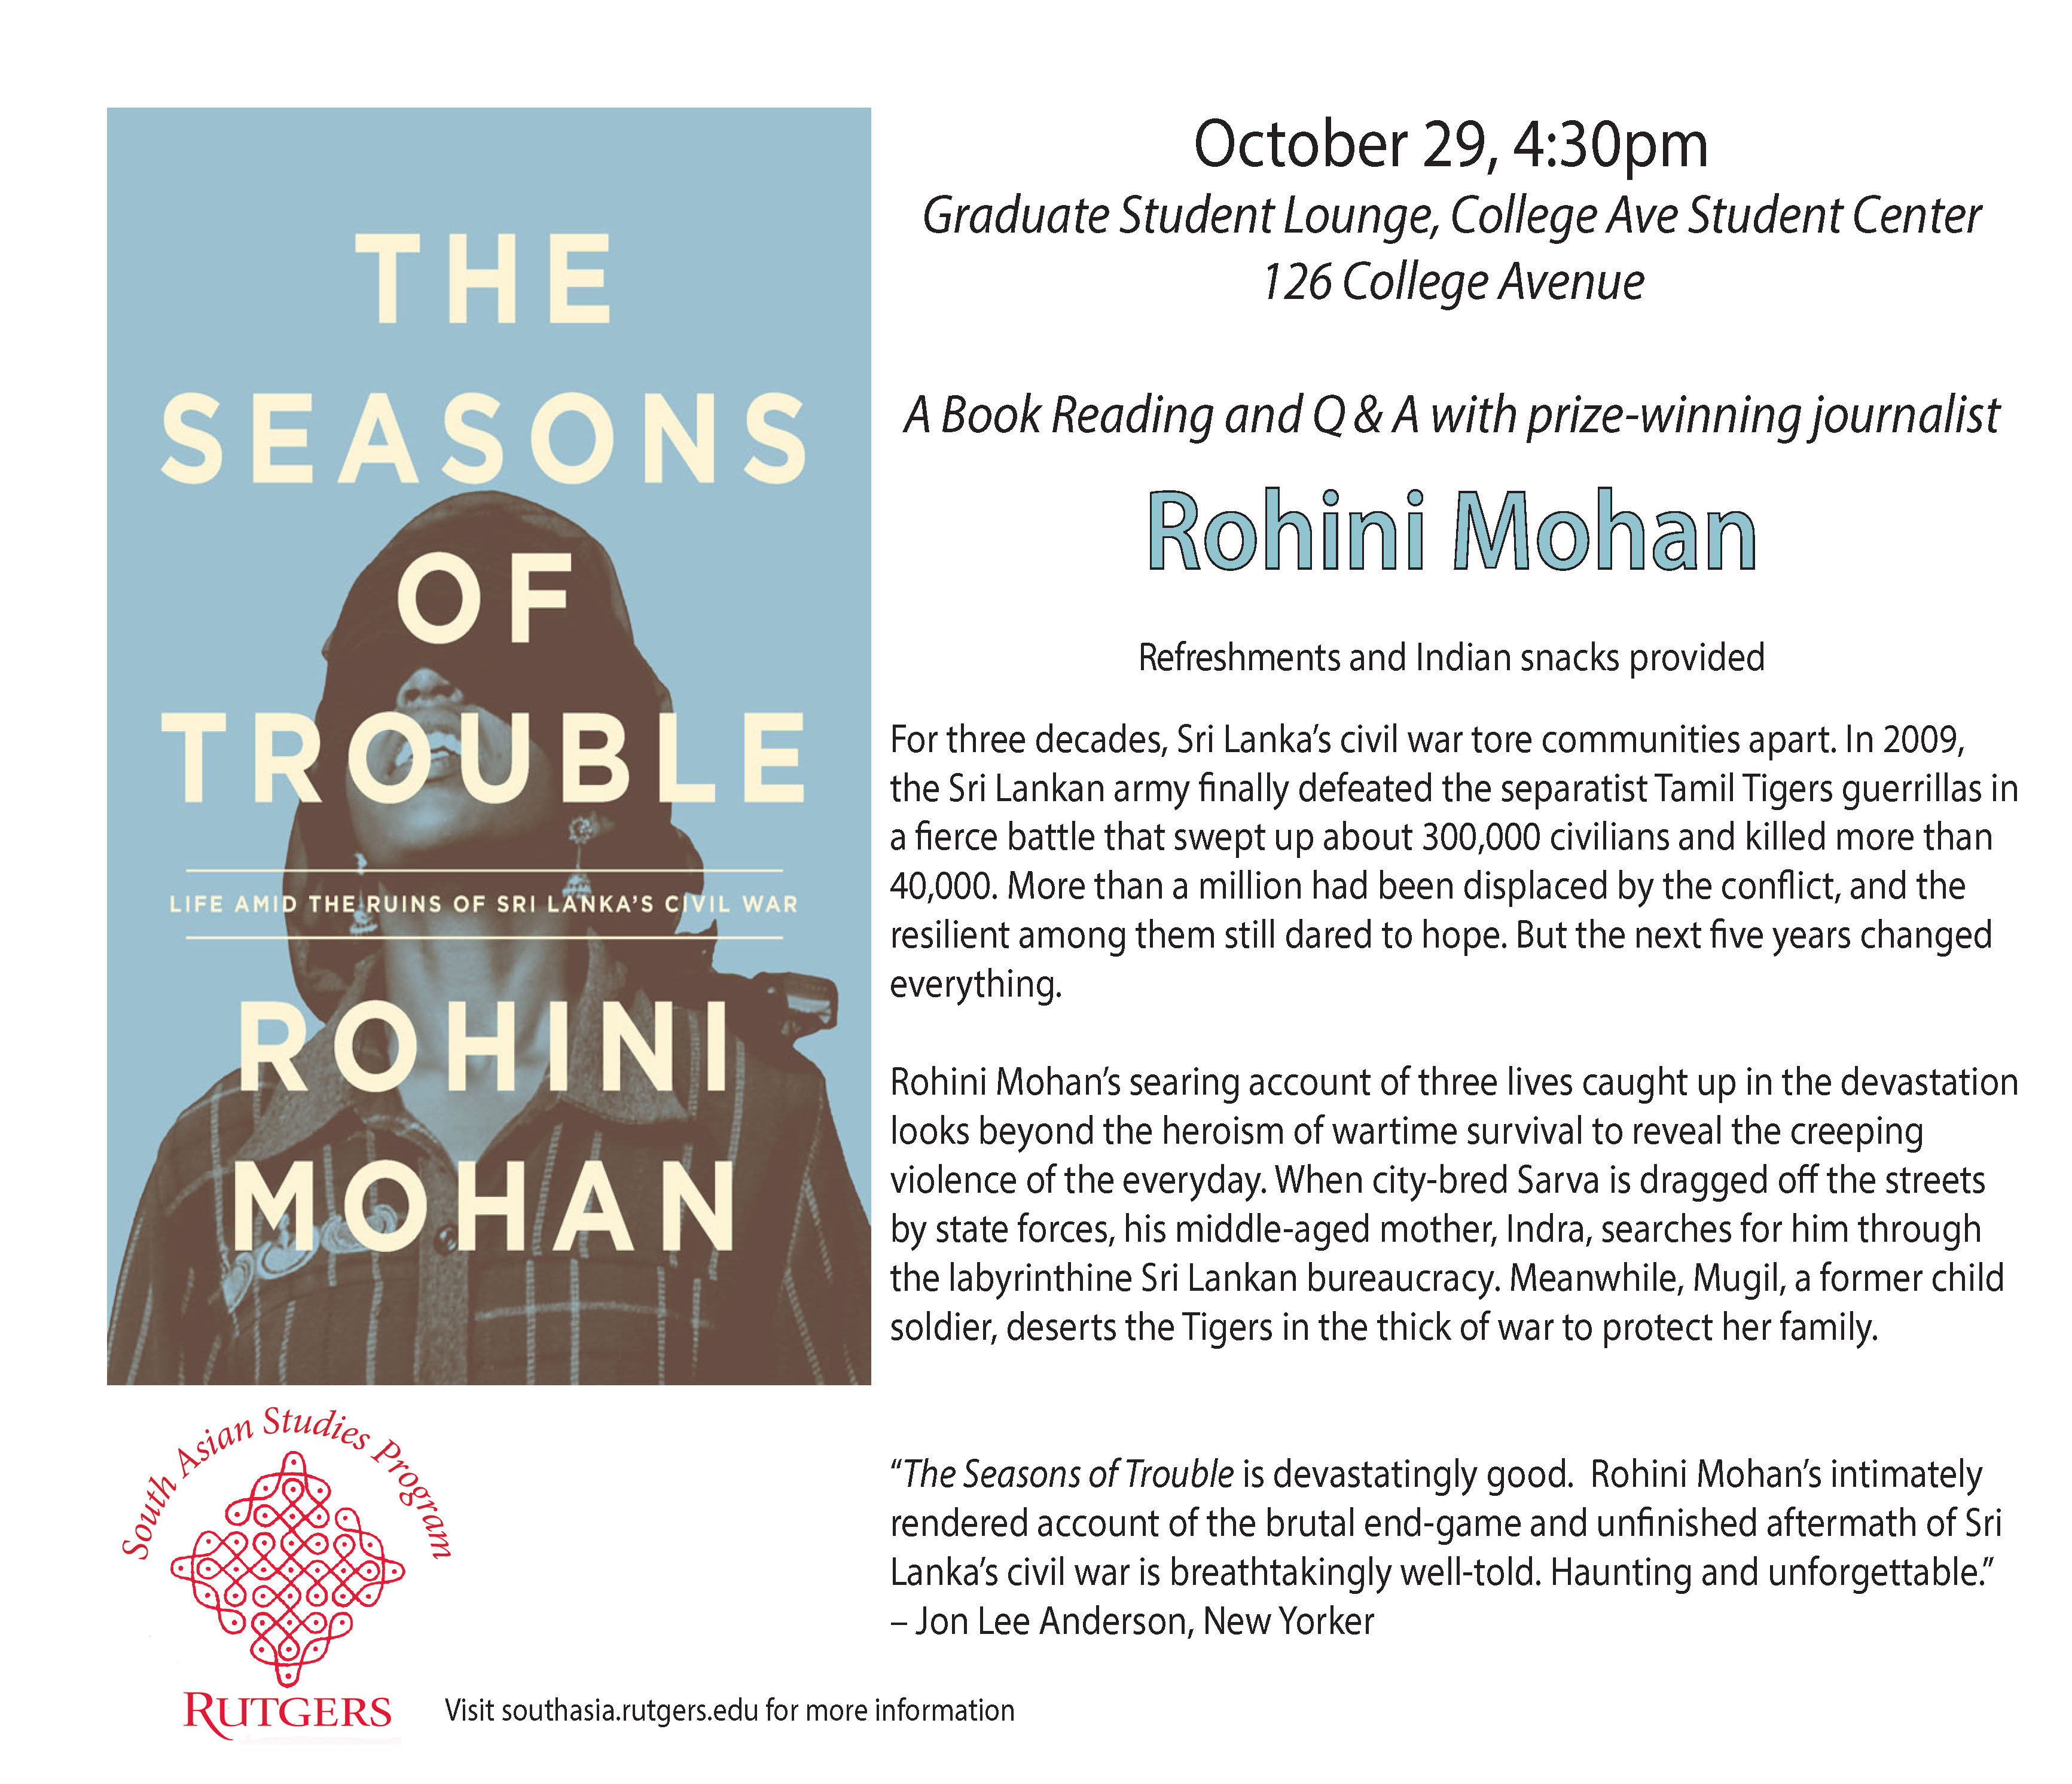 Rohini Mohan Book Reading 2014